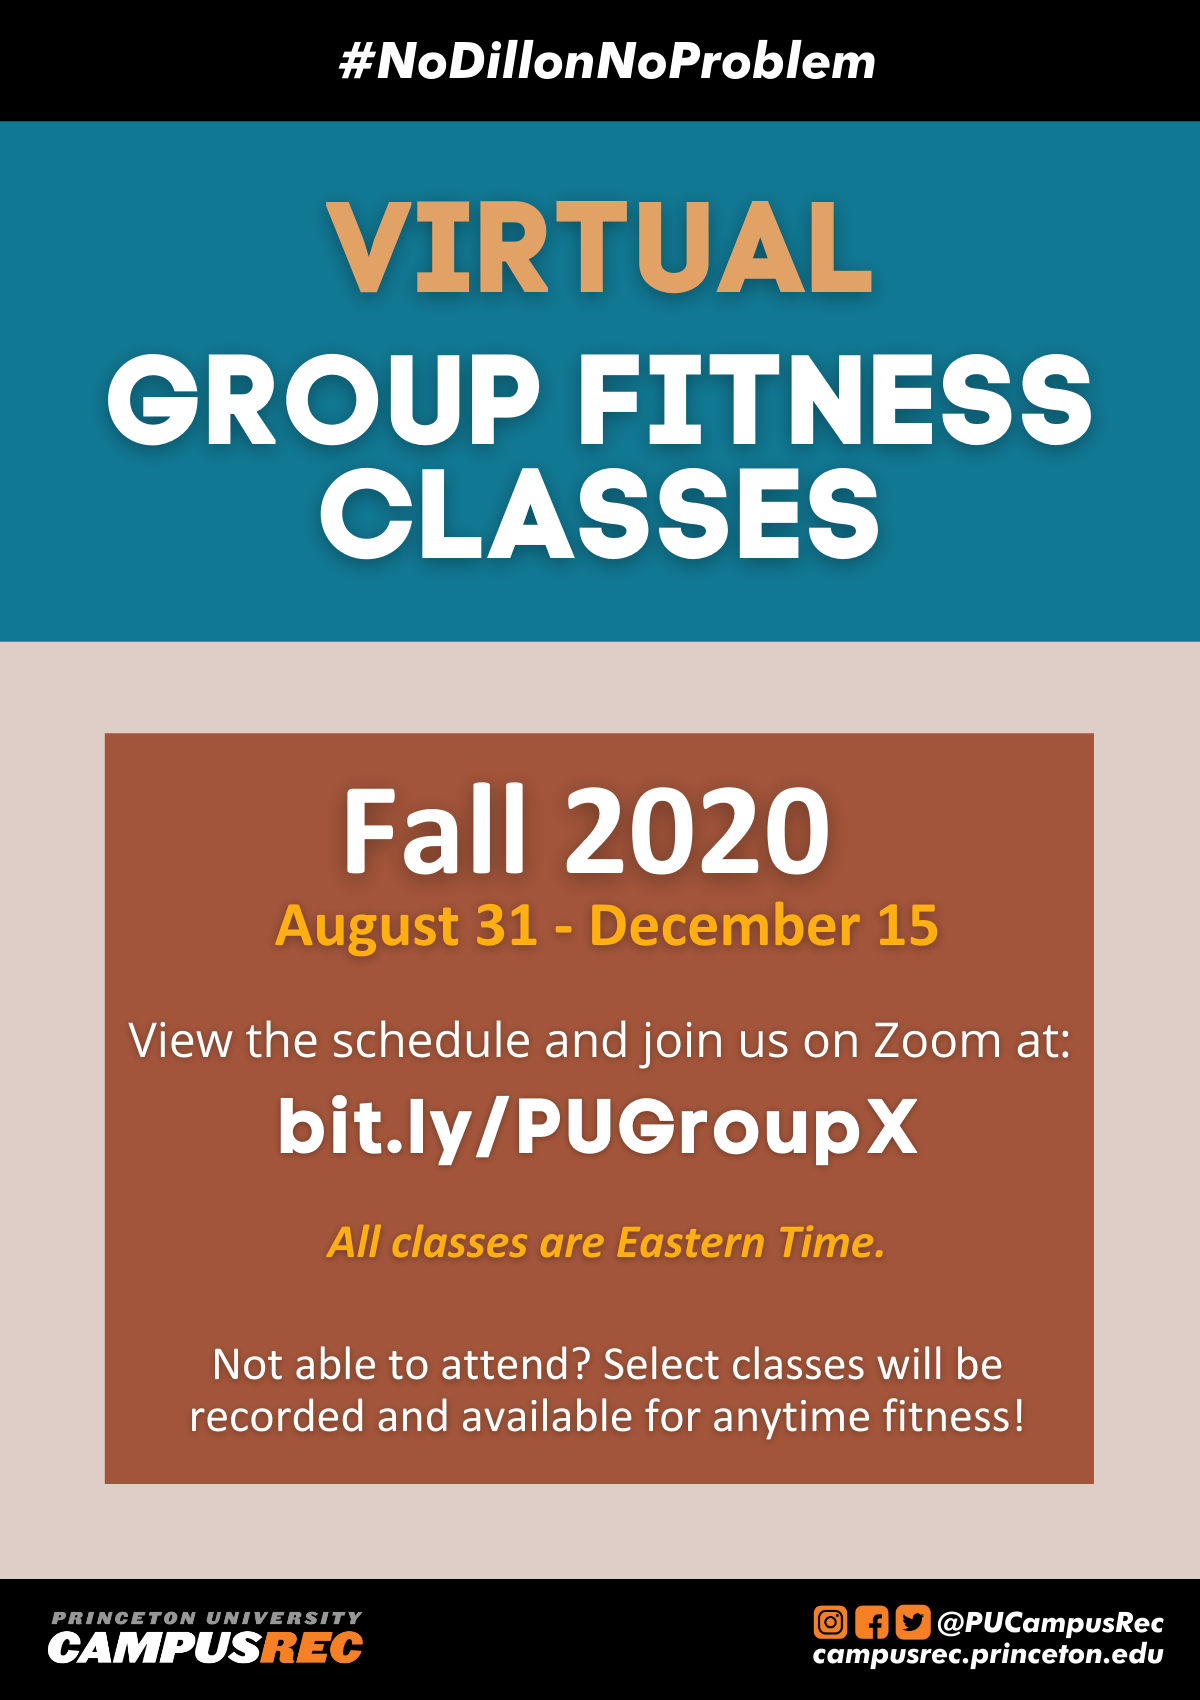 Poster of Virtual Group Fitness Classes for Fall 2020 August 31 - December 15. View the schedule and join us on Zoom at: bit.ly/PUGroupX. All classes are Eastern Time. Not able to attend? Select classes will be recorded and available for anytime fitness!